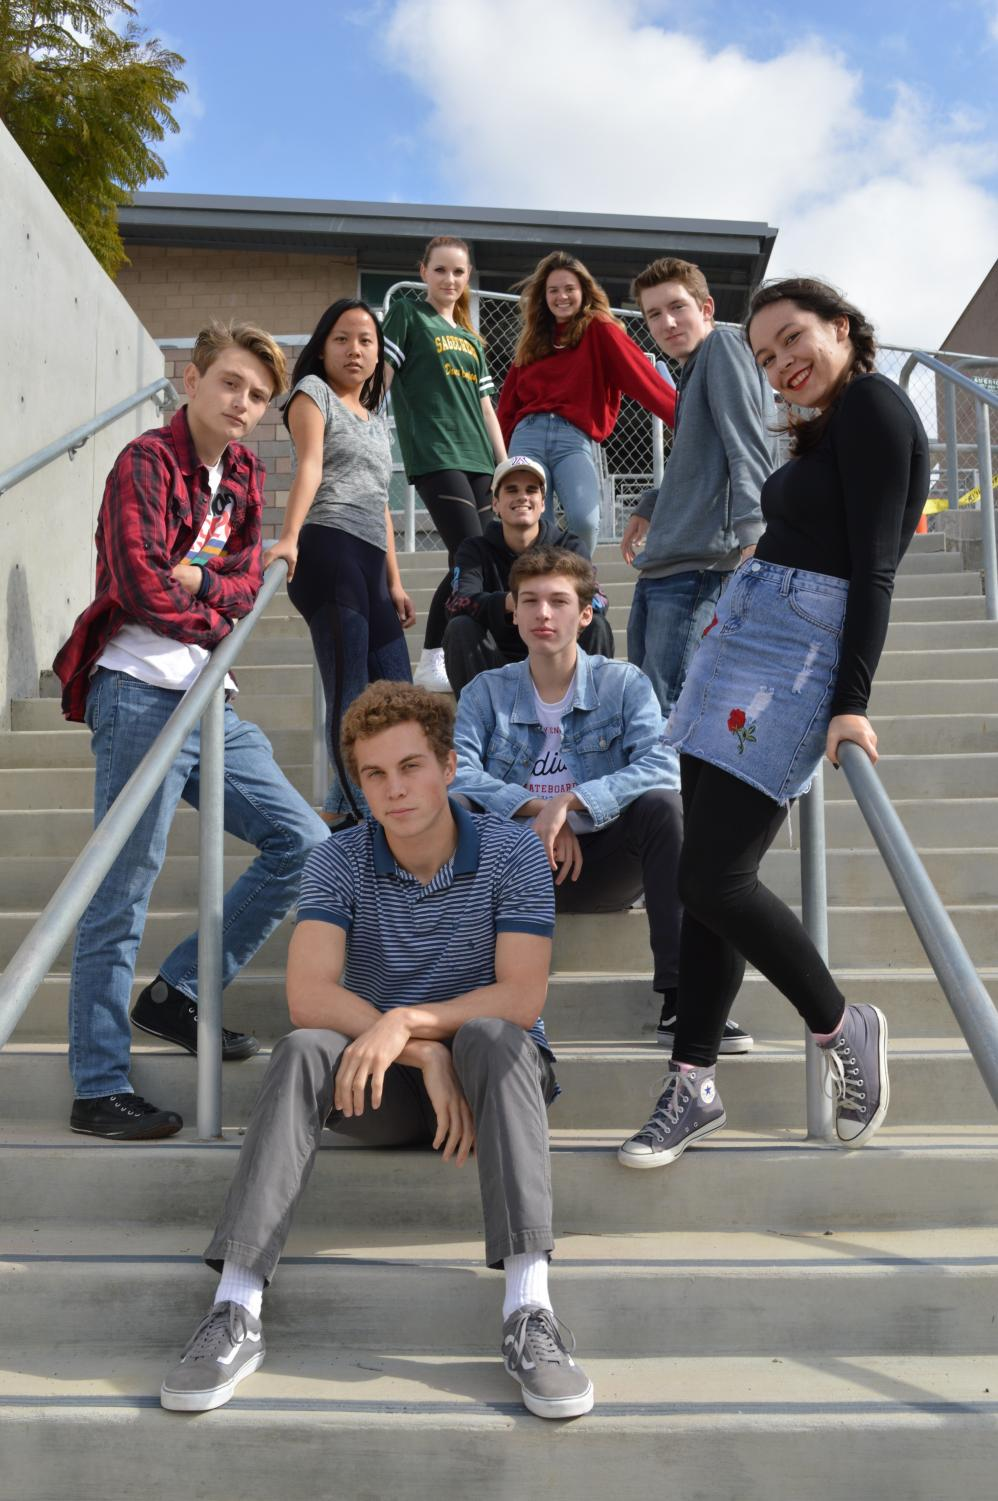 The nine senior directors of the 2018 Senior Directing Showcase pose dramatically on a staircase outside of the performing Arts Center. The directors worked on producing a scene for their project in which they had to pick, cut, cast, and direct before the showcase was performed for parents, peers, and theater lovers alike.